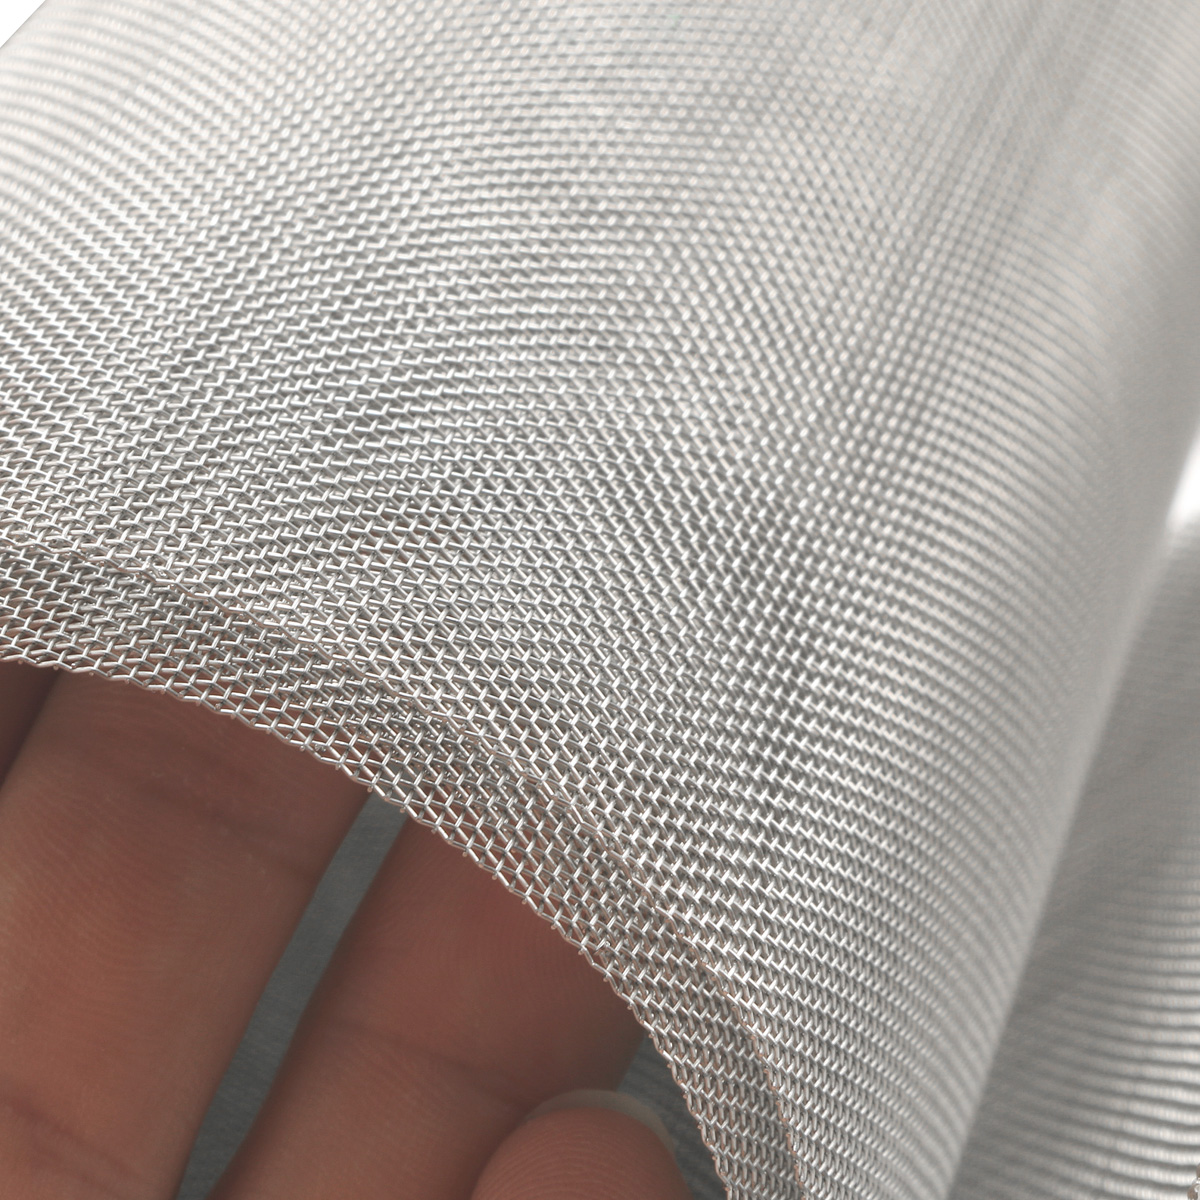 100x15cm Stainless Steel Woven Wire Cloth Screen Plate Filtration Filter 30 Mesh